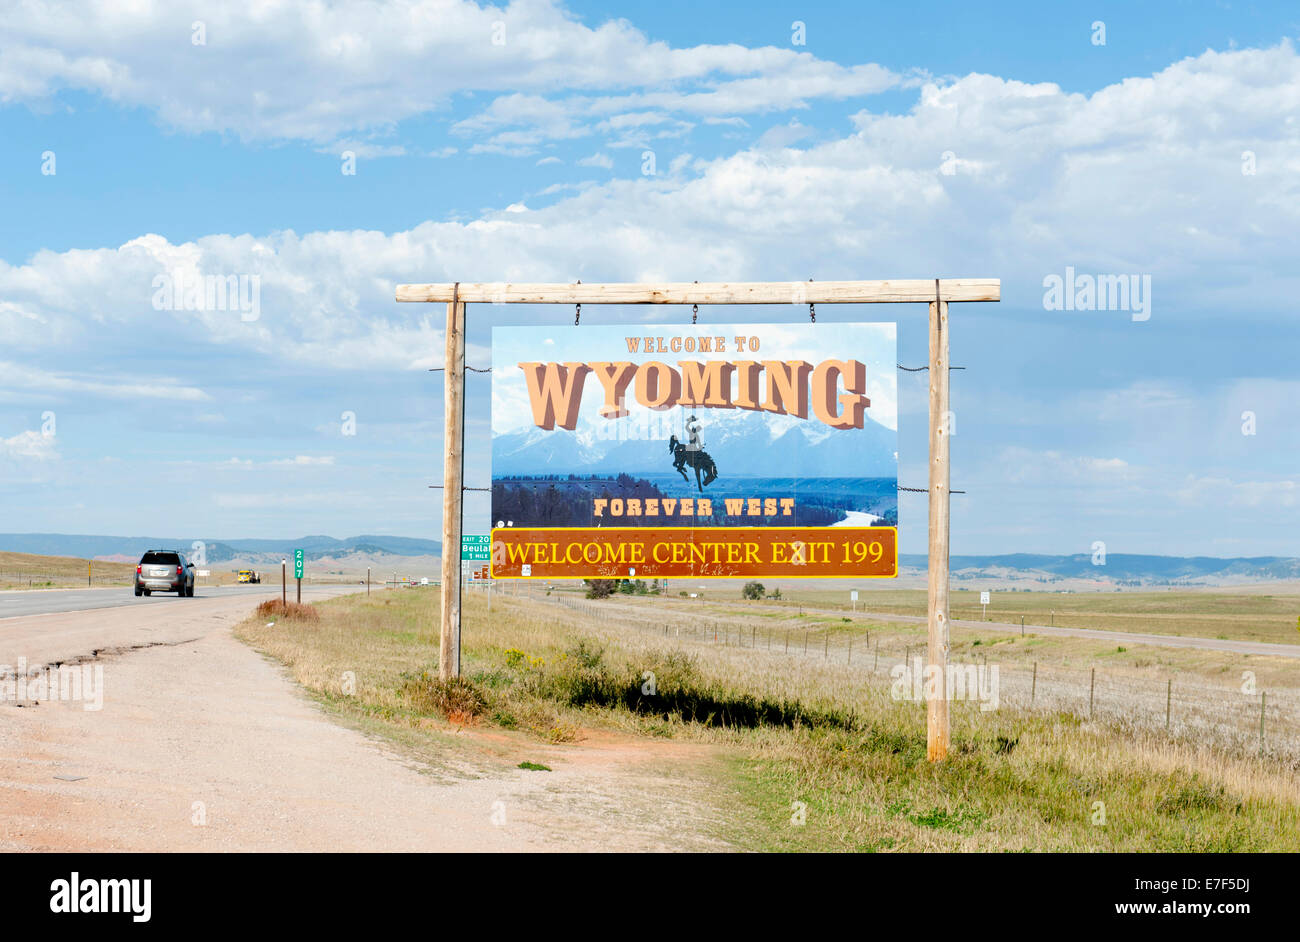 Welcome sign on a highway, 'Welcome to Wyoming, Forever West', flat landscape, Wyoming, USA - Stock Image